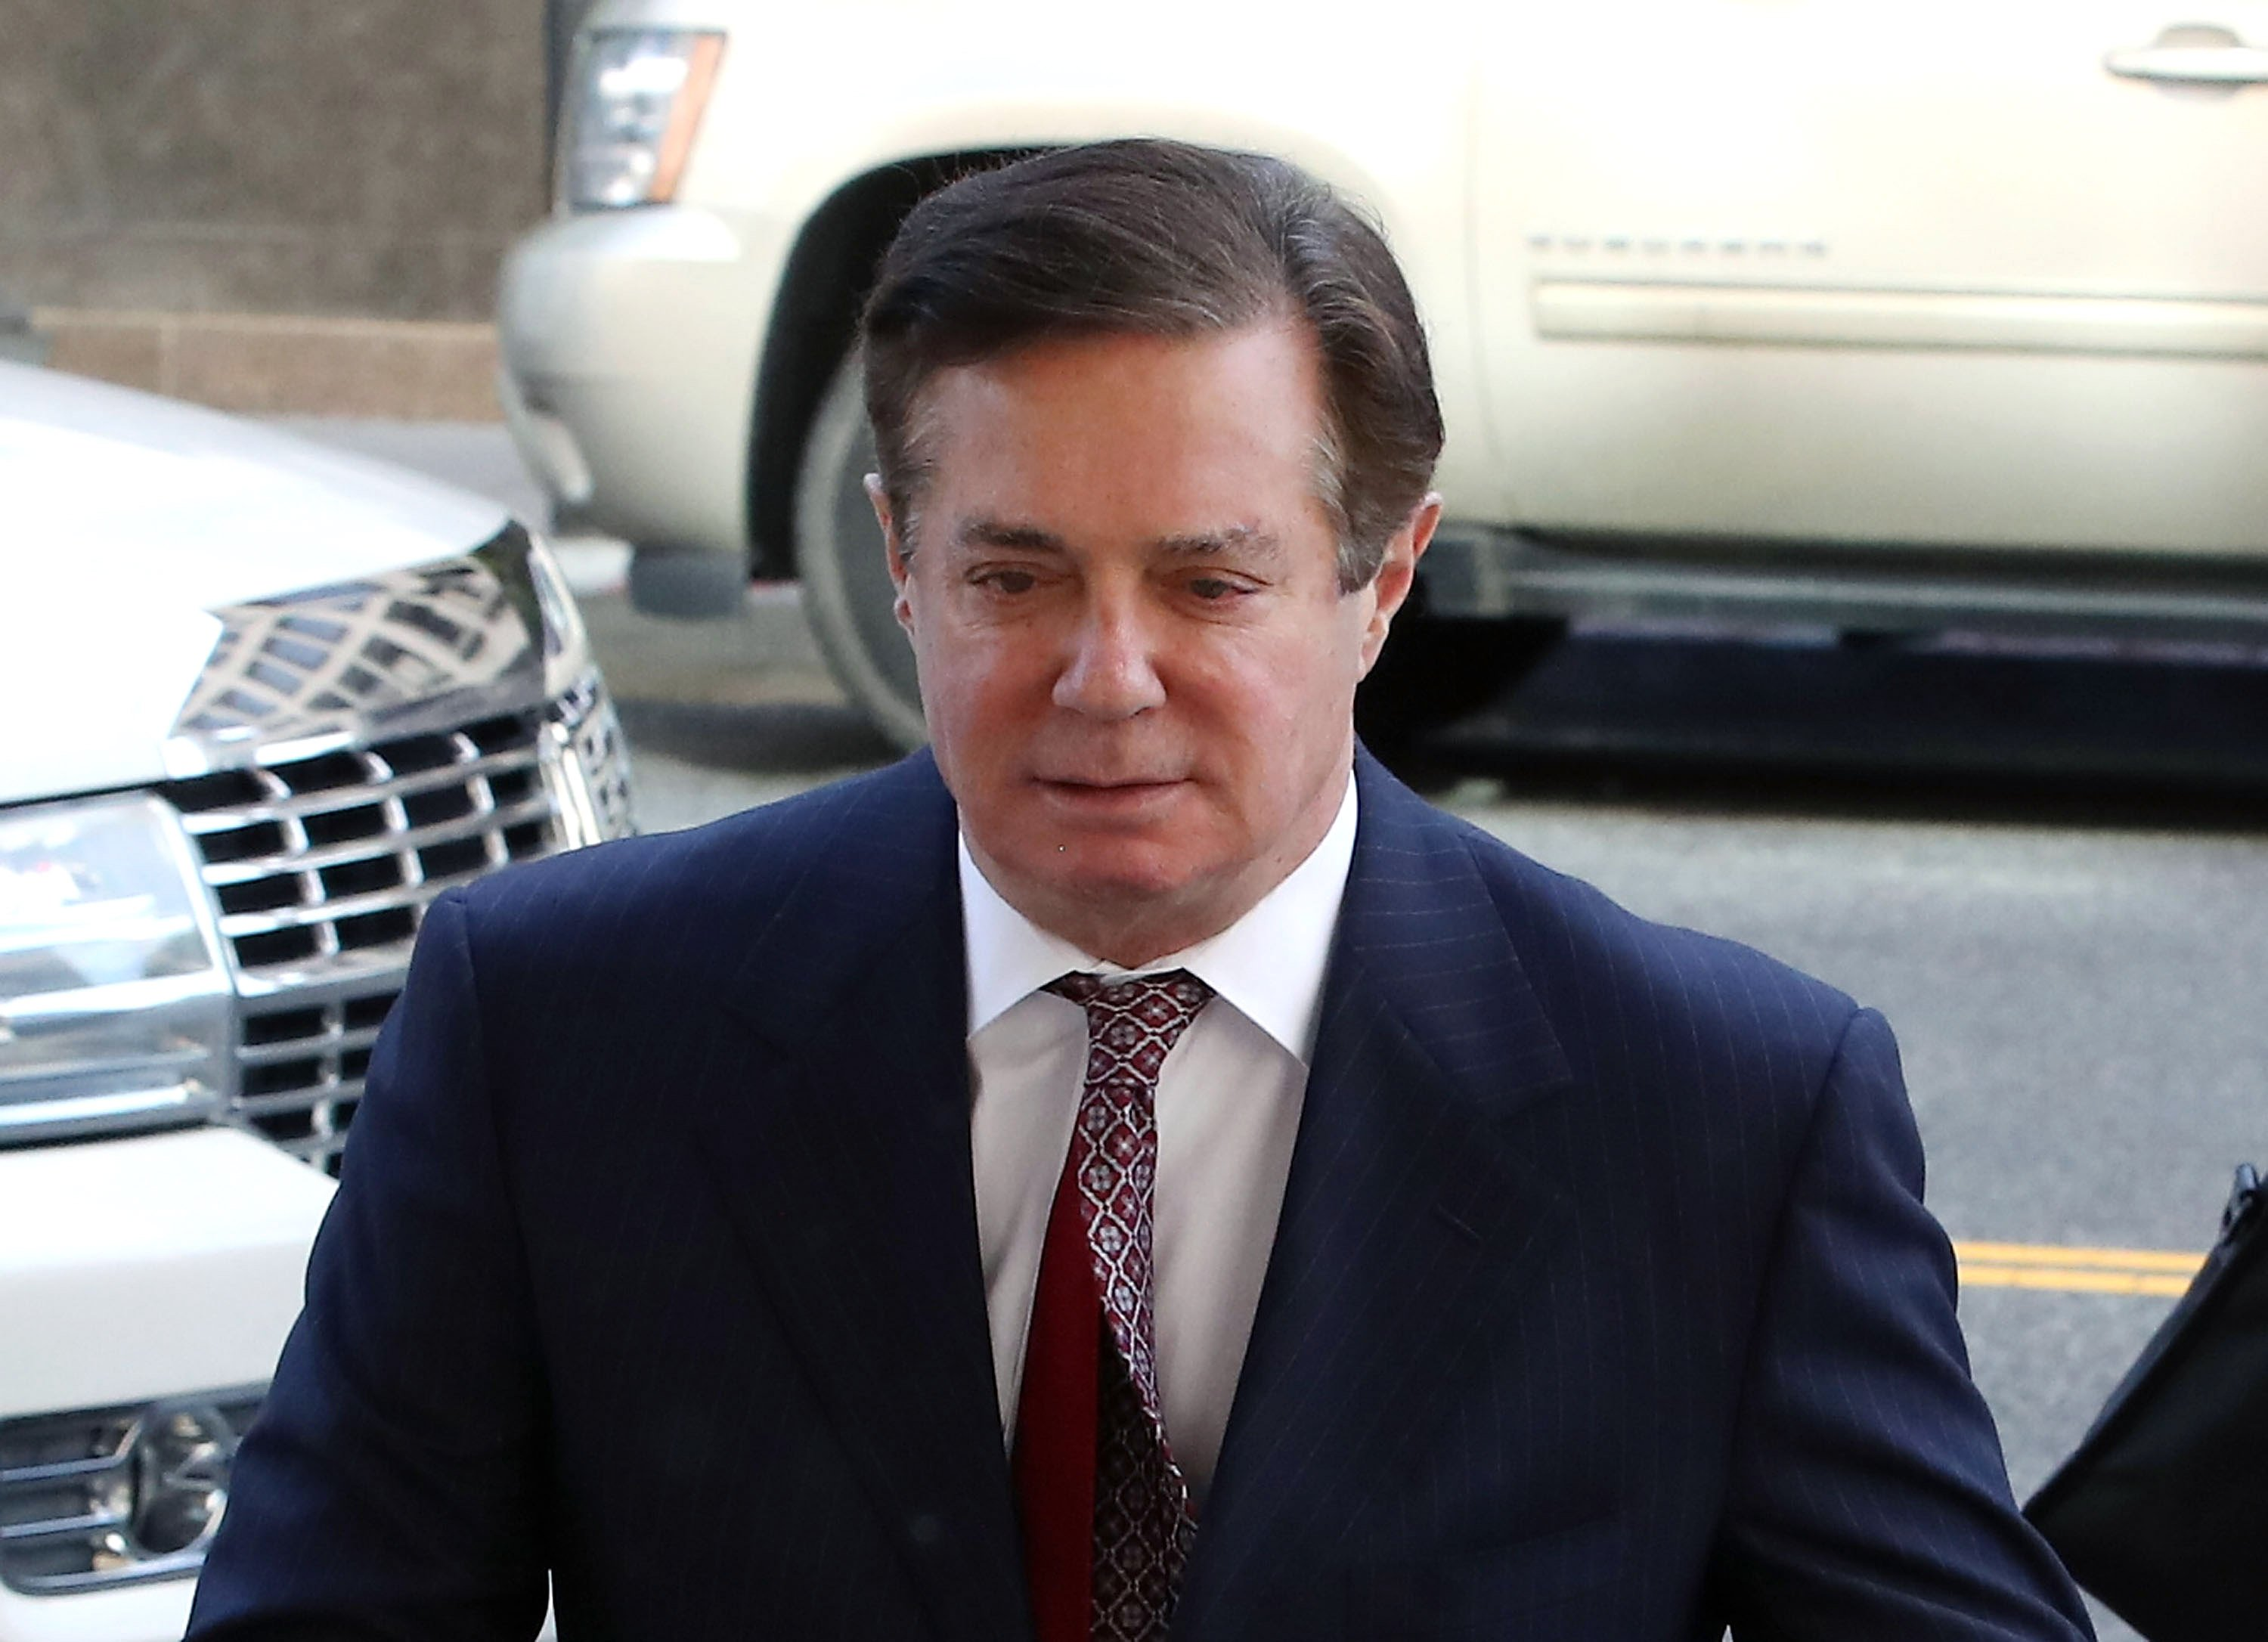 Paul Manafort outside the E. Barrett Prettyman U.S. Courthouse in Washington D.C. | Photo: Getty Images